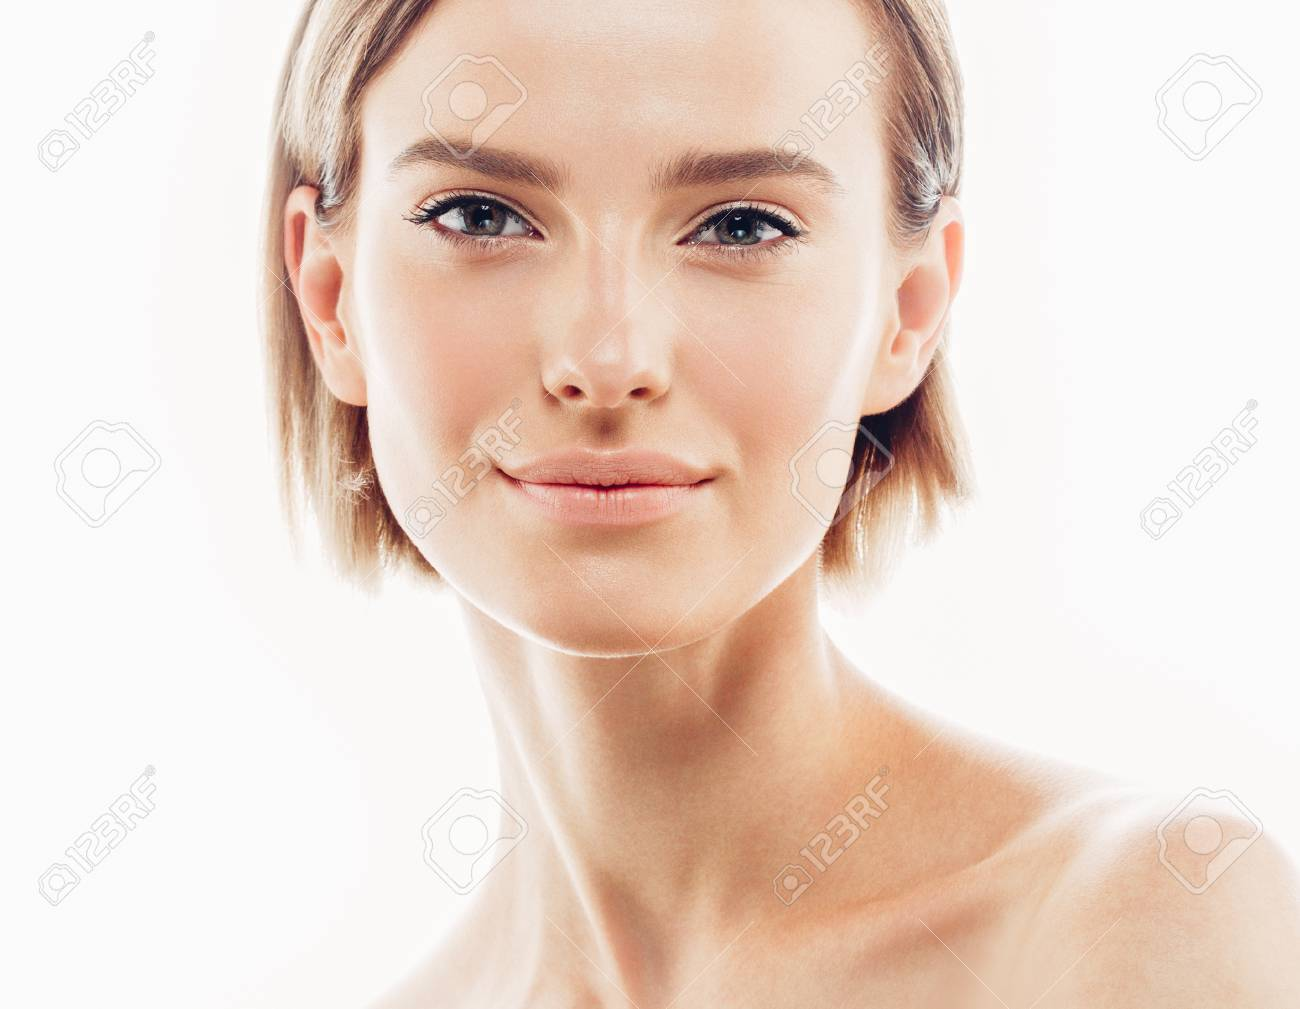 Beauty Woman face Portrait. Beautiful model Girl with Perfect Fresh Clean Skin color lips purple red. Blonde brunette short hair Youth and Skin Care Concept. Isolated on a white background - 66201064